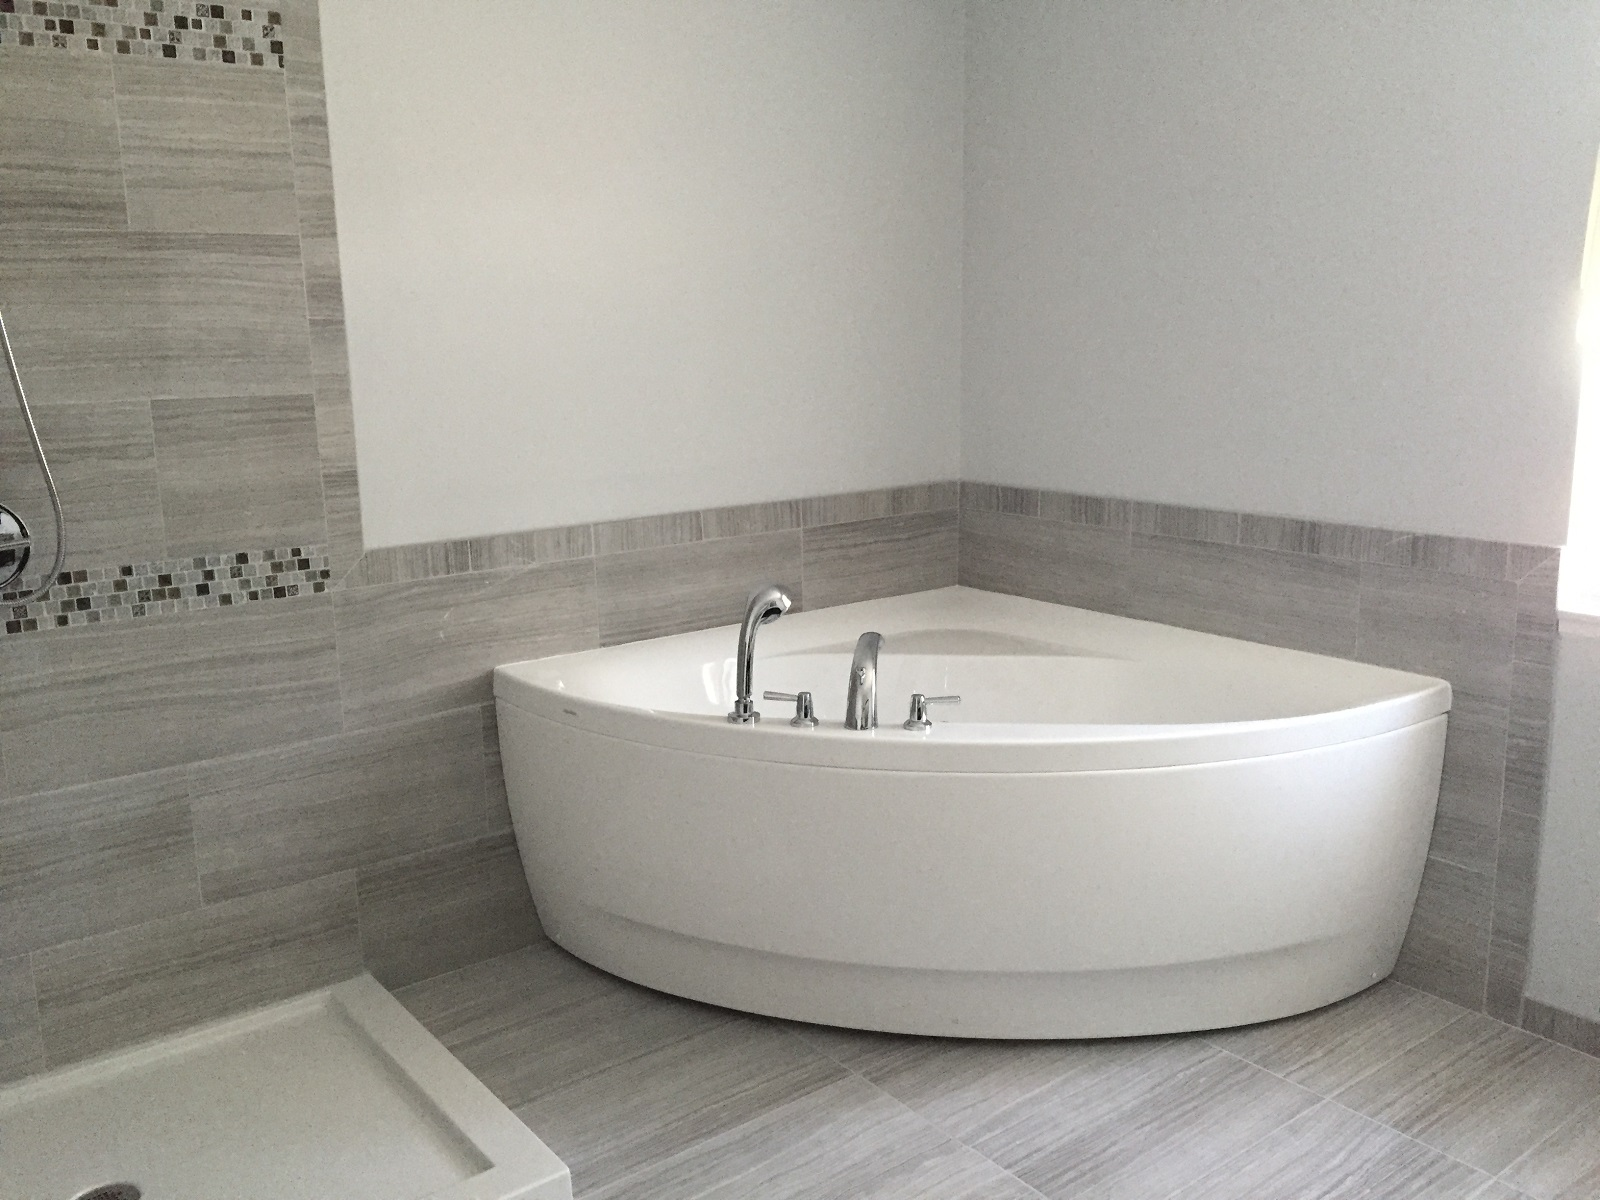 Aquatica olivia wht small corner acrylic bathtub - Corner tub bathrooms design ...